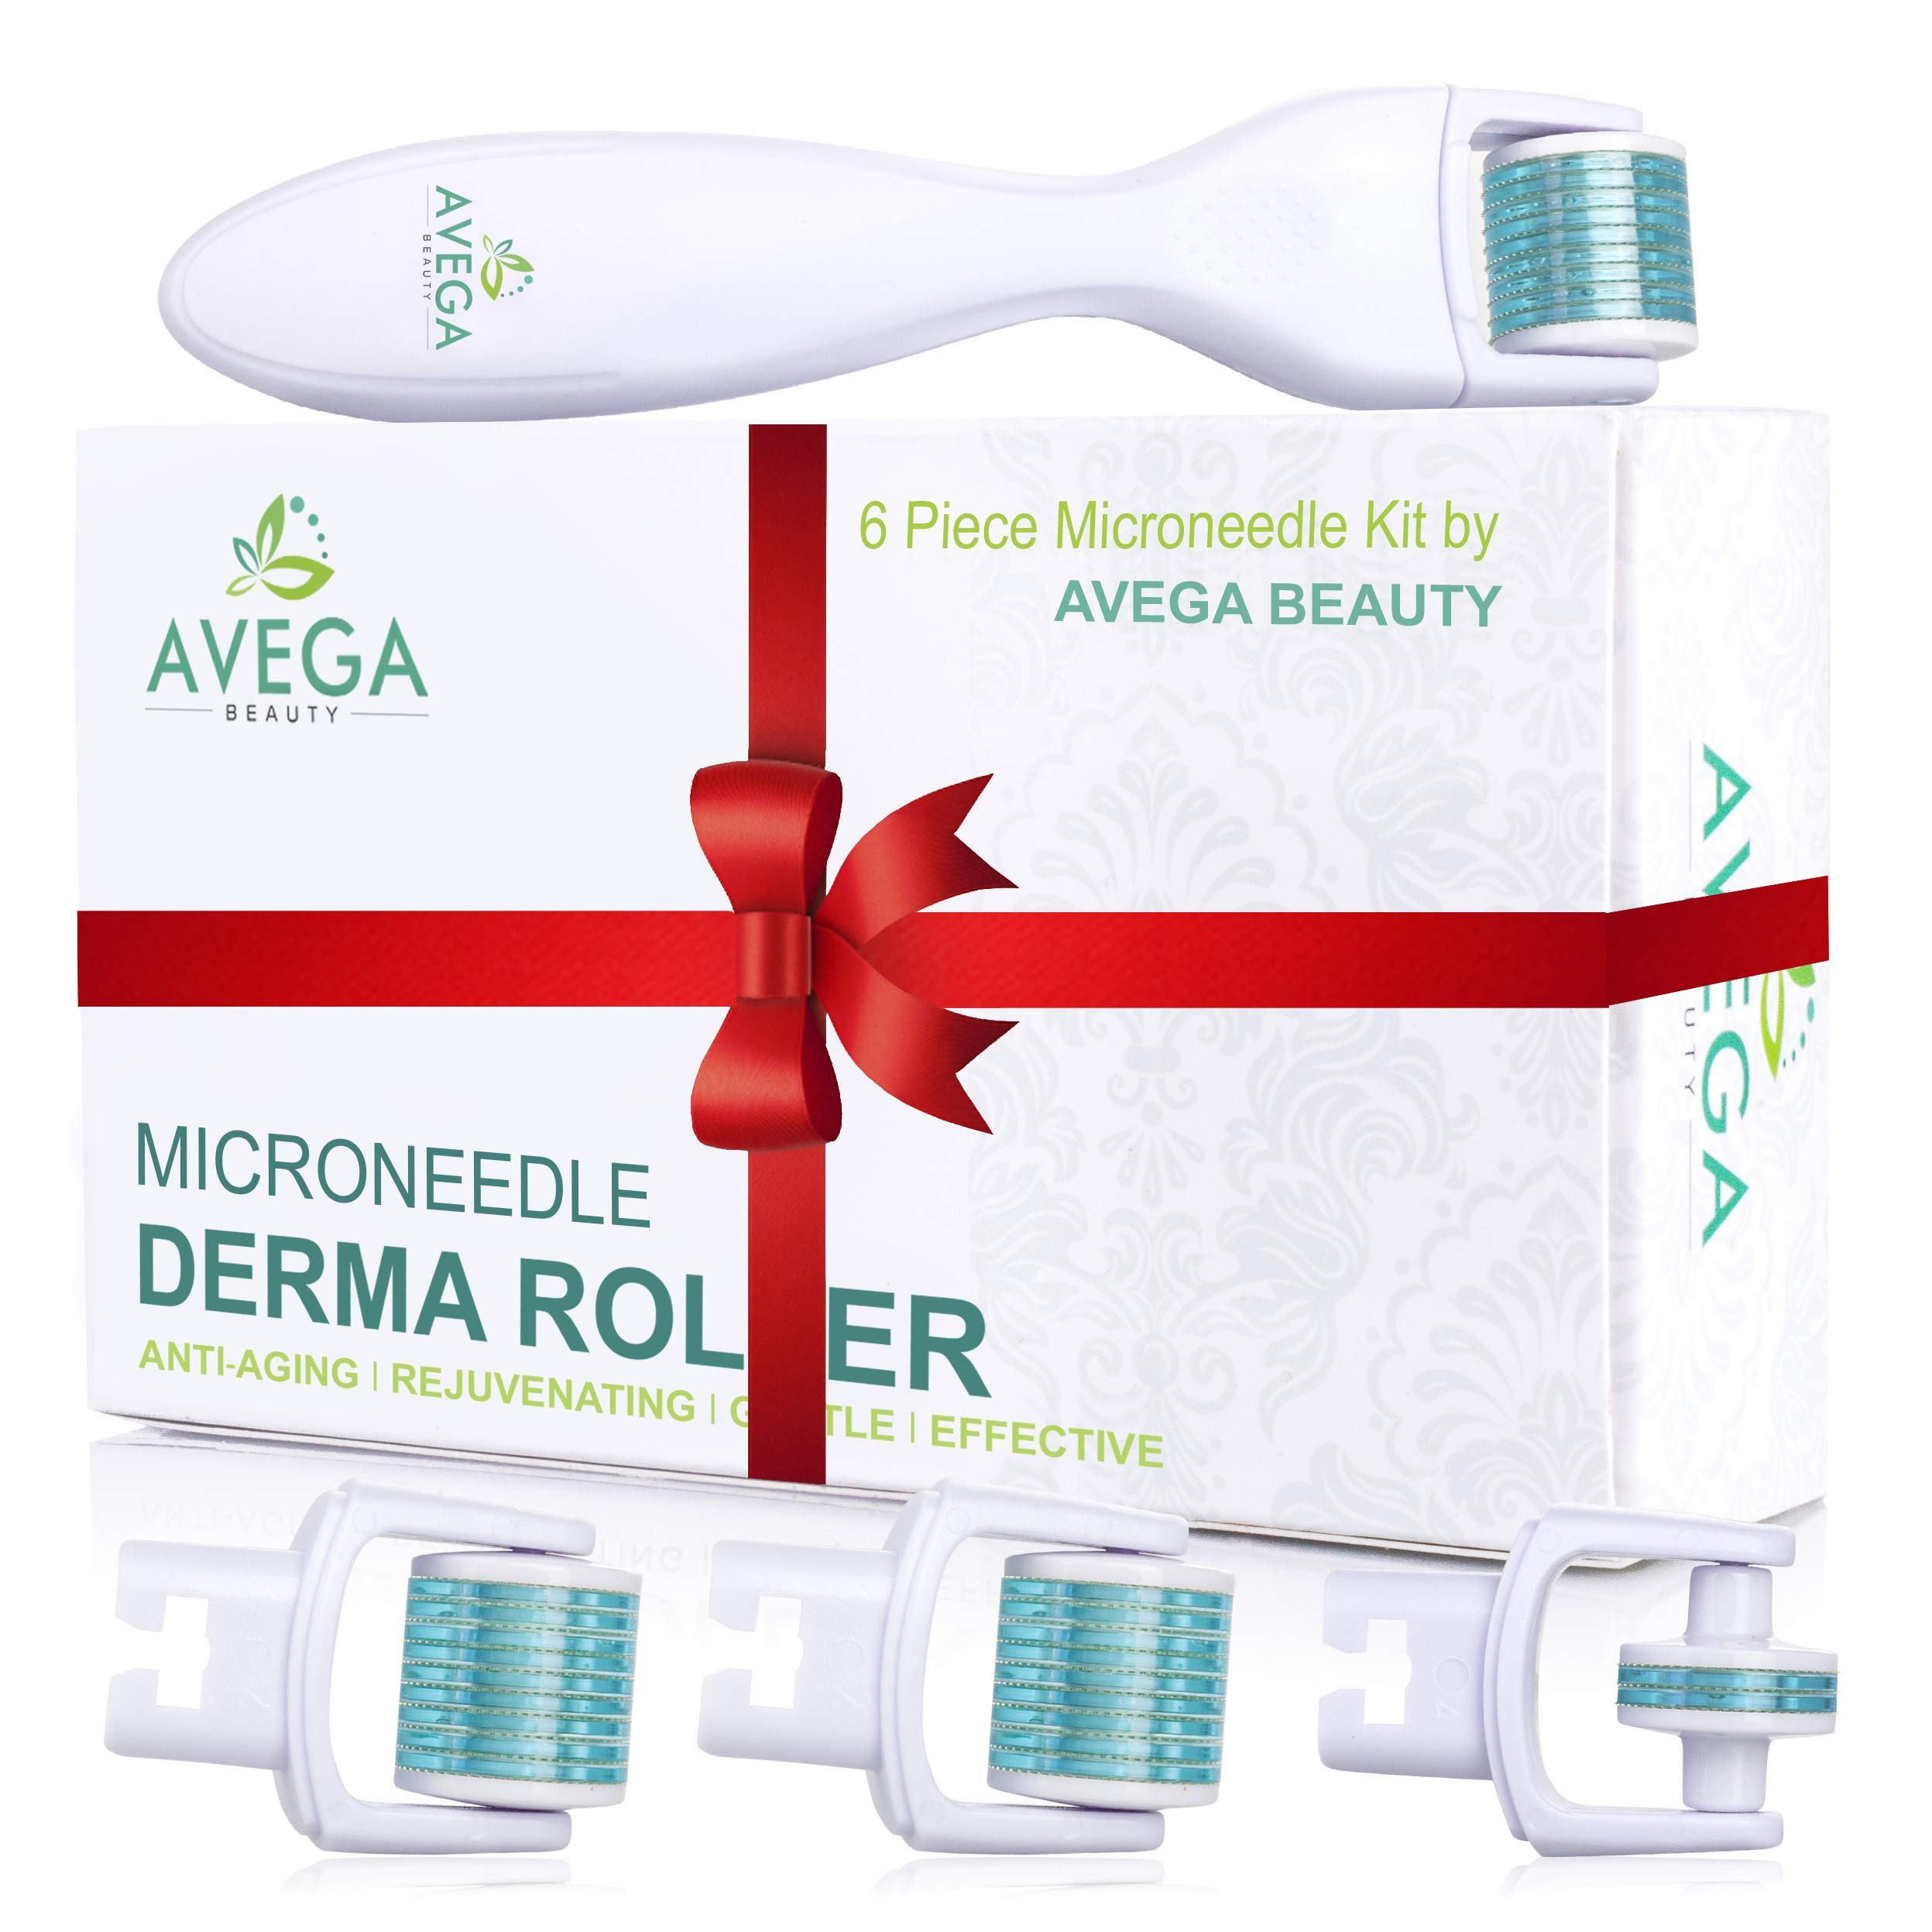 Derma Roller Kit for Face & Body: 0.25mm Length Microneedle Dermaroller Tool - Microneedling Facial Kits with 3 Replacement Heads with 600 Titanium Micro Needles, 1 with 180 Needles & Storage Case by AVEGA BEAUTY